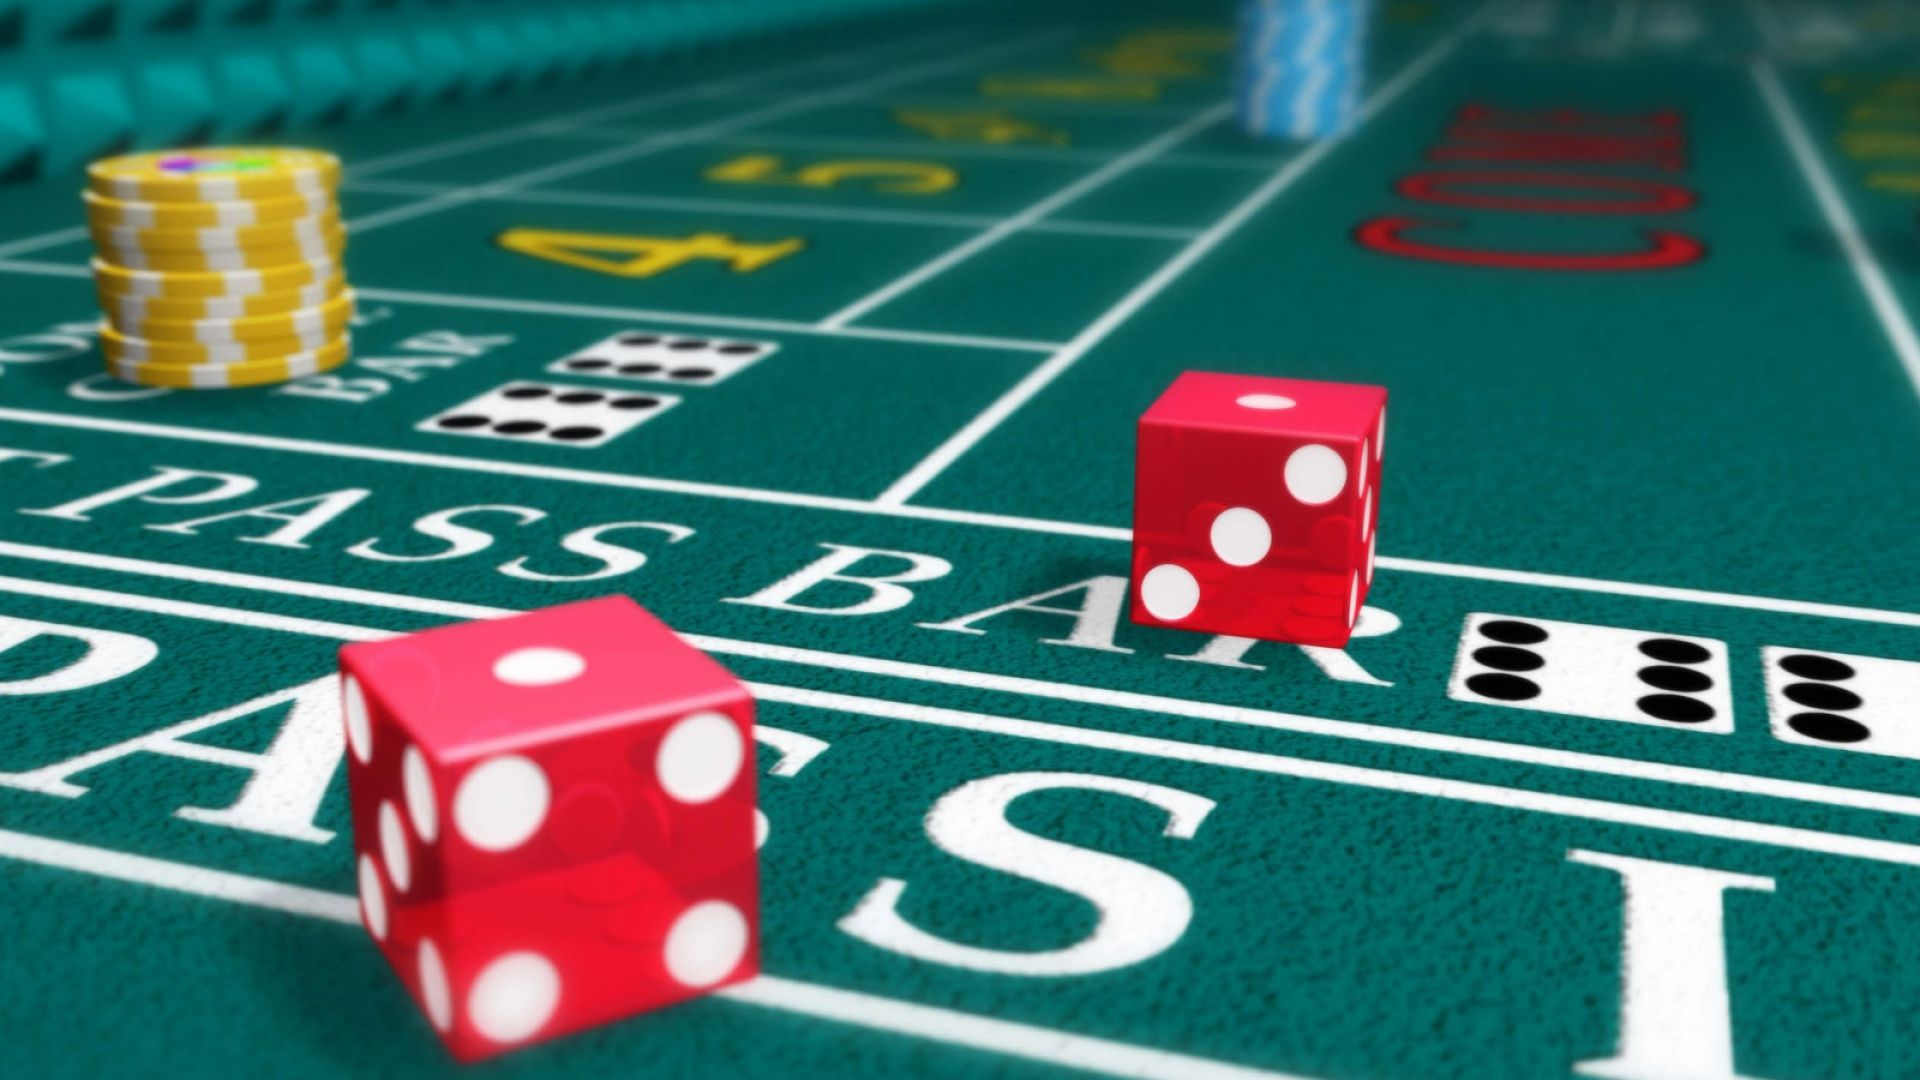 How To Make Use Of Gambling To Want